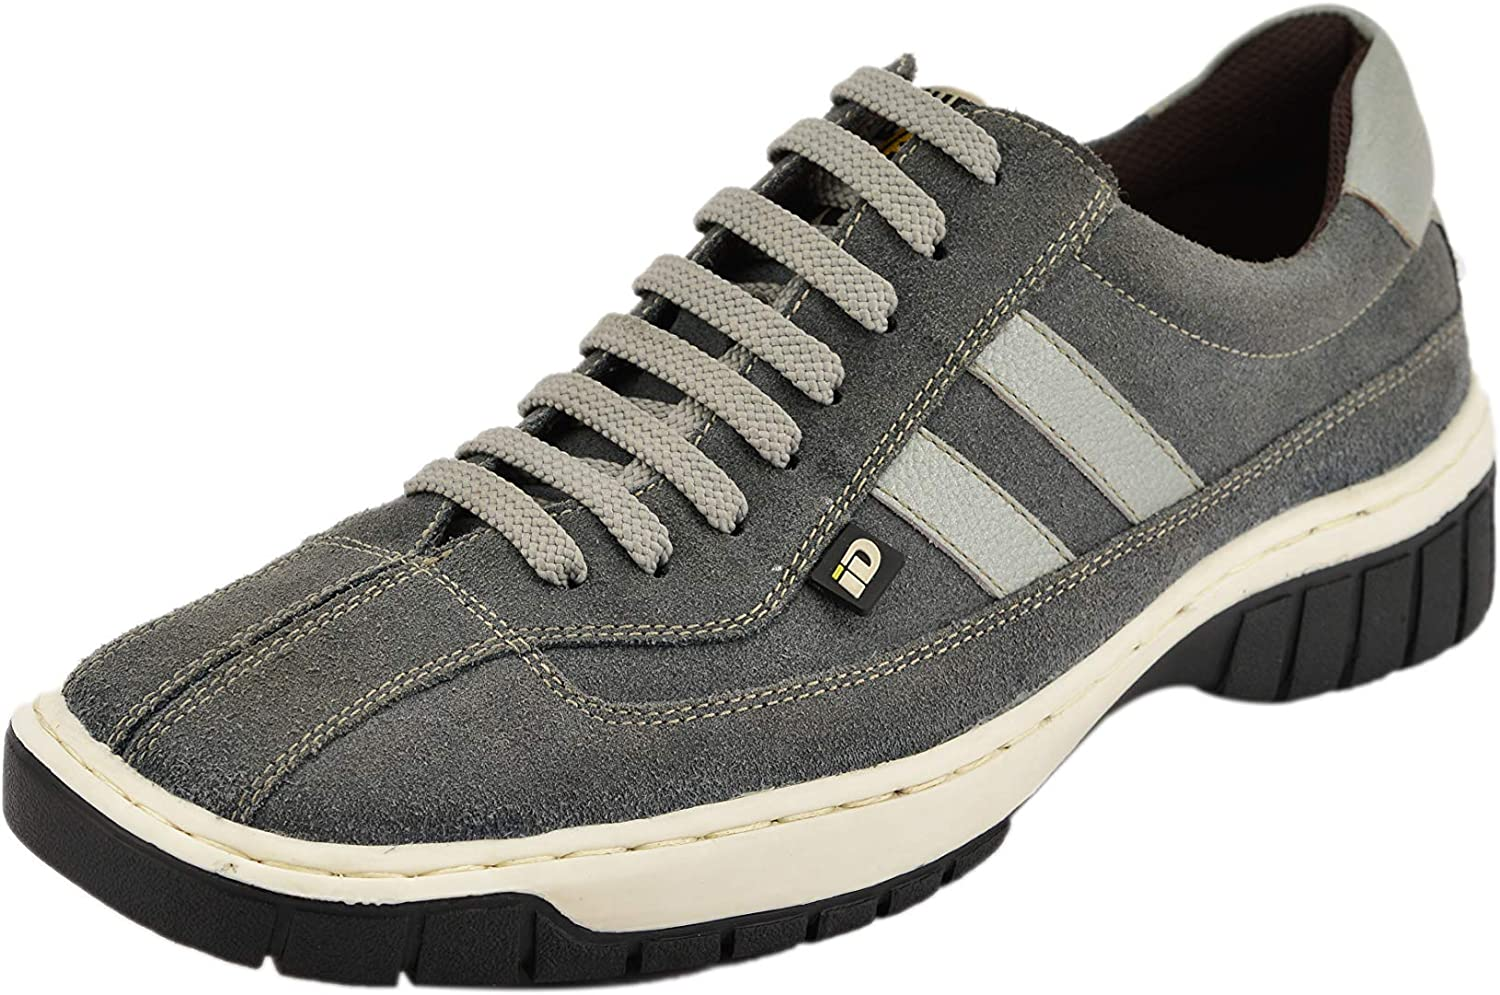 ID Men's Casual Genuine Leather Lace up Fashion Sneakers with Dual color Sole